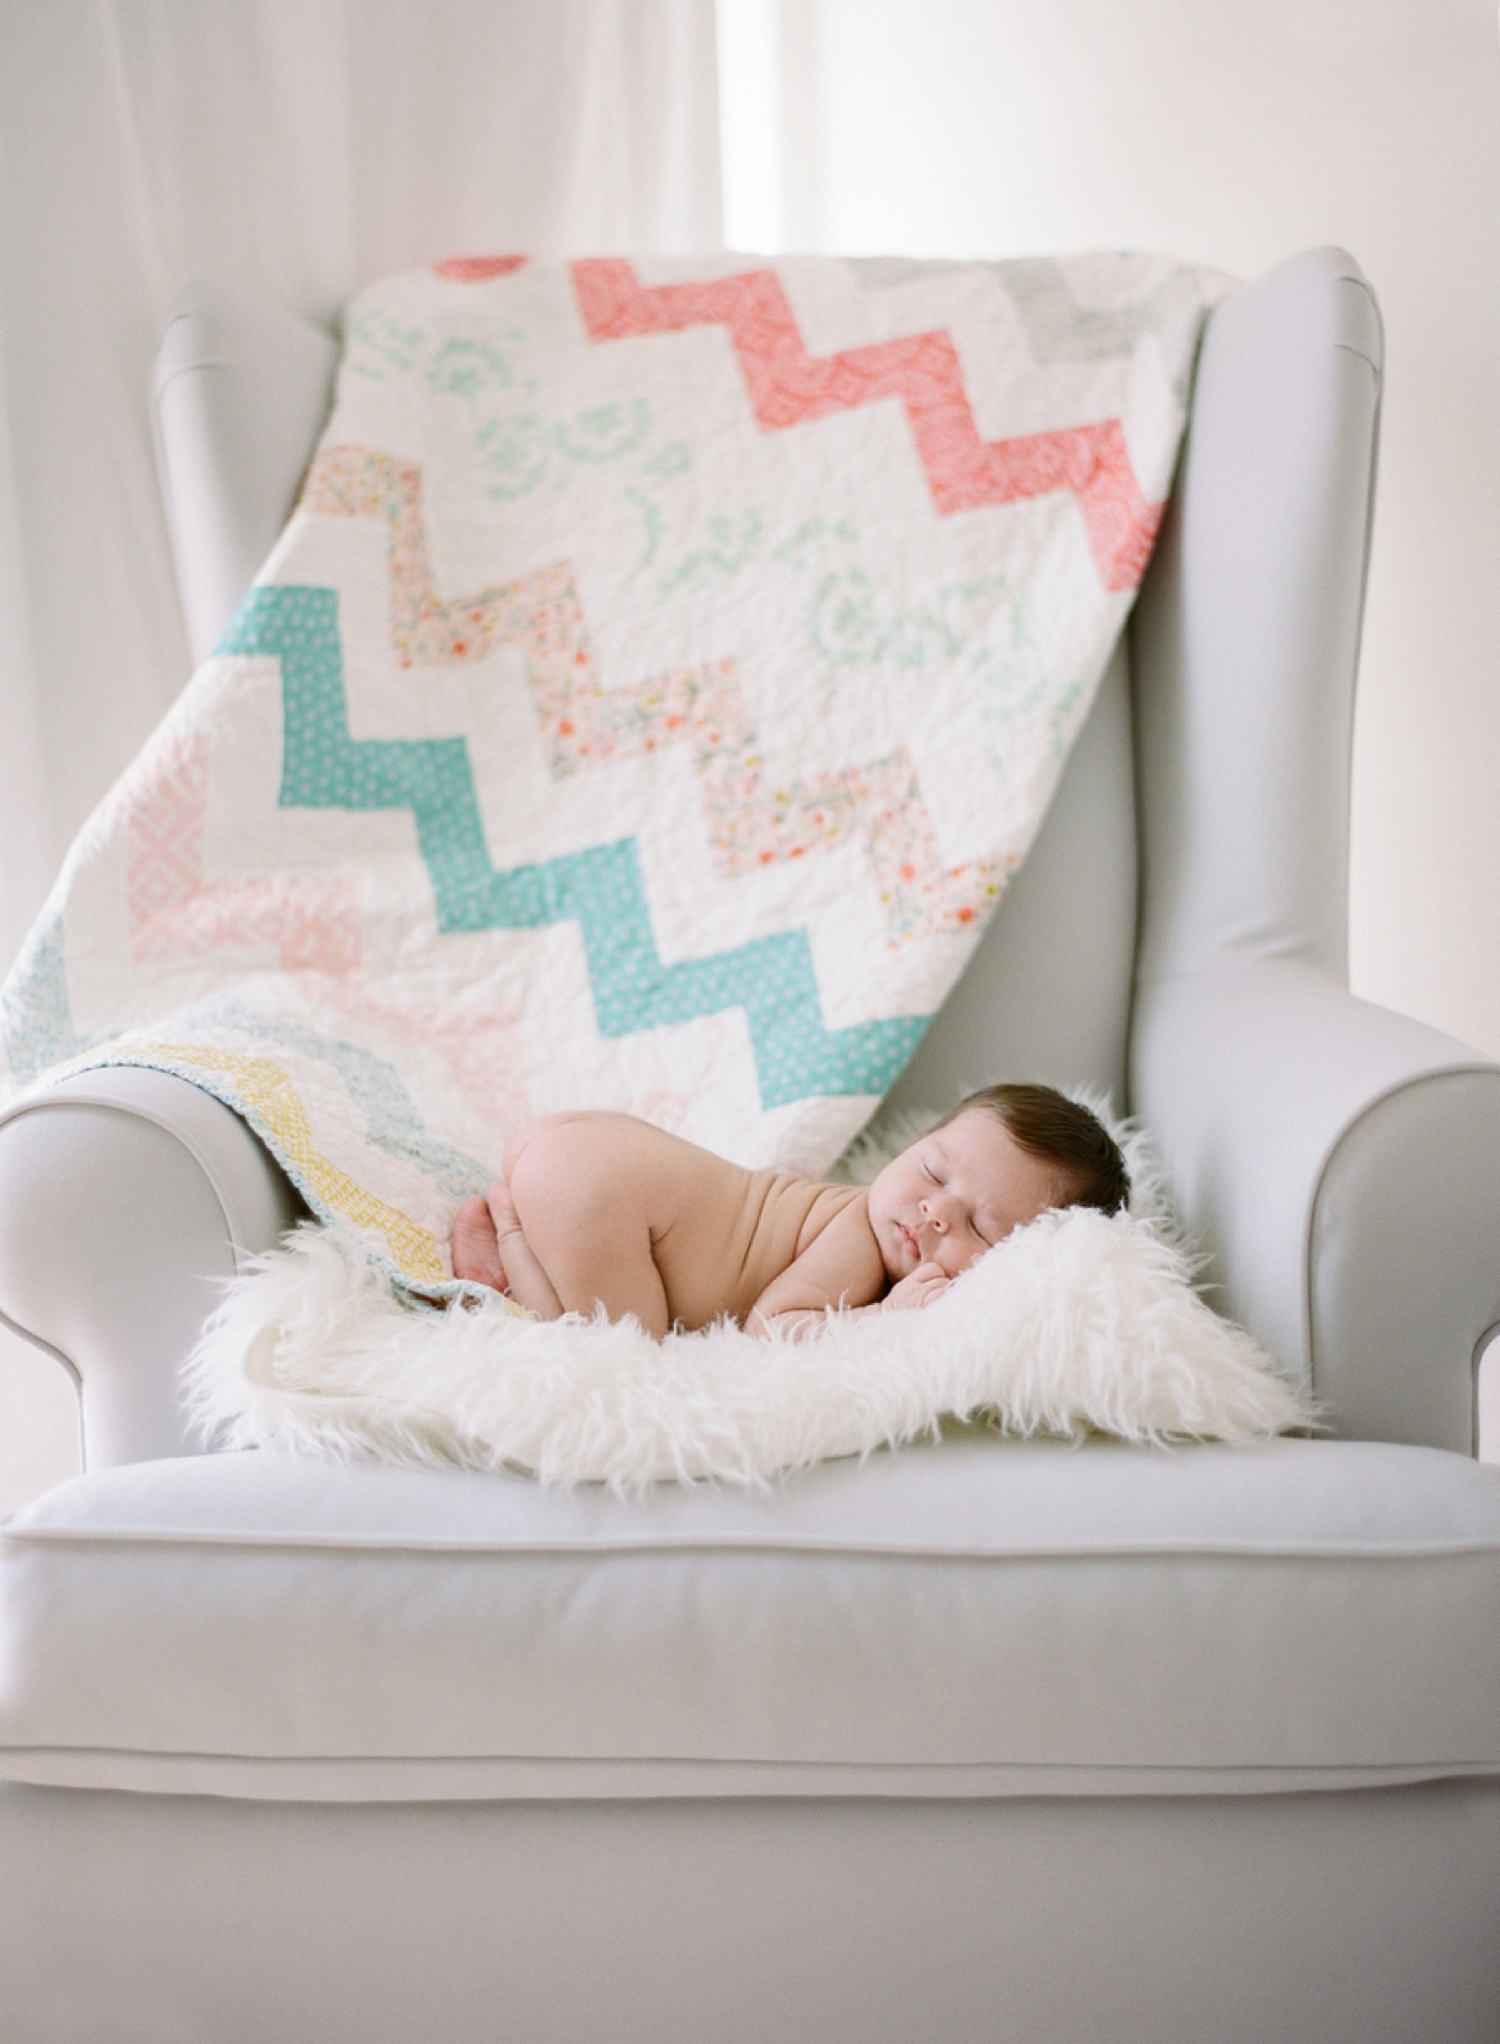 newborn portrait photographer on film I Audra Wrisley